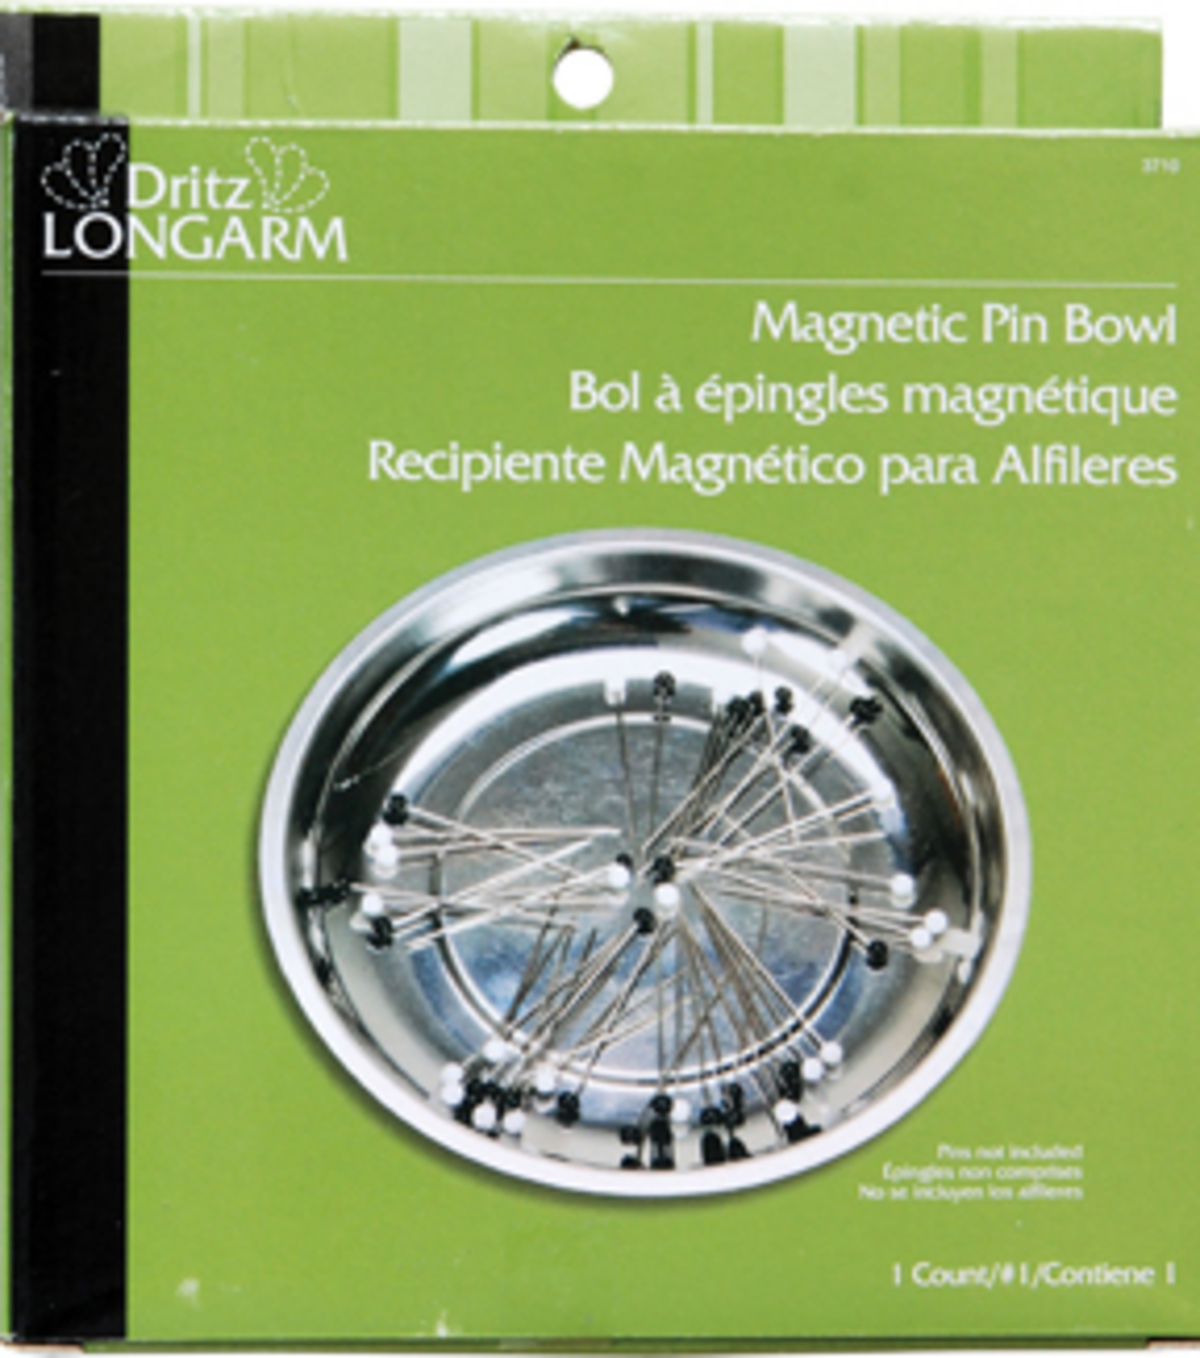 La Magnetic Pin Bowl